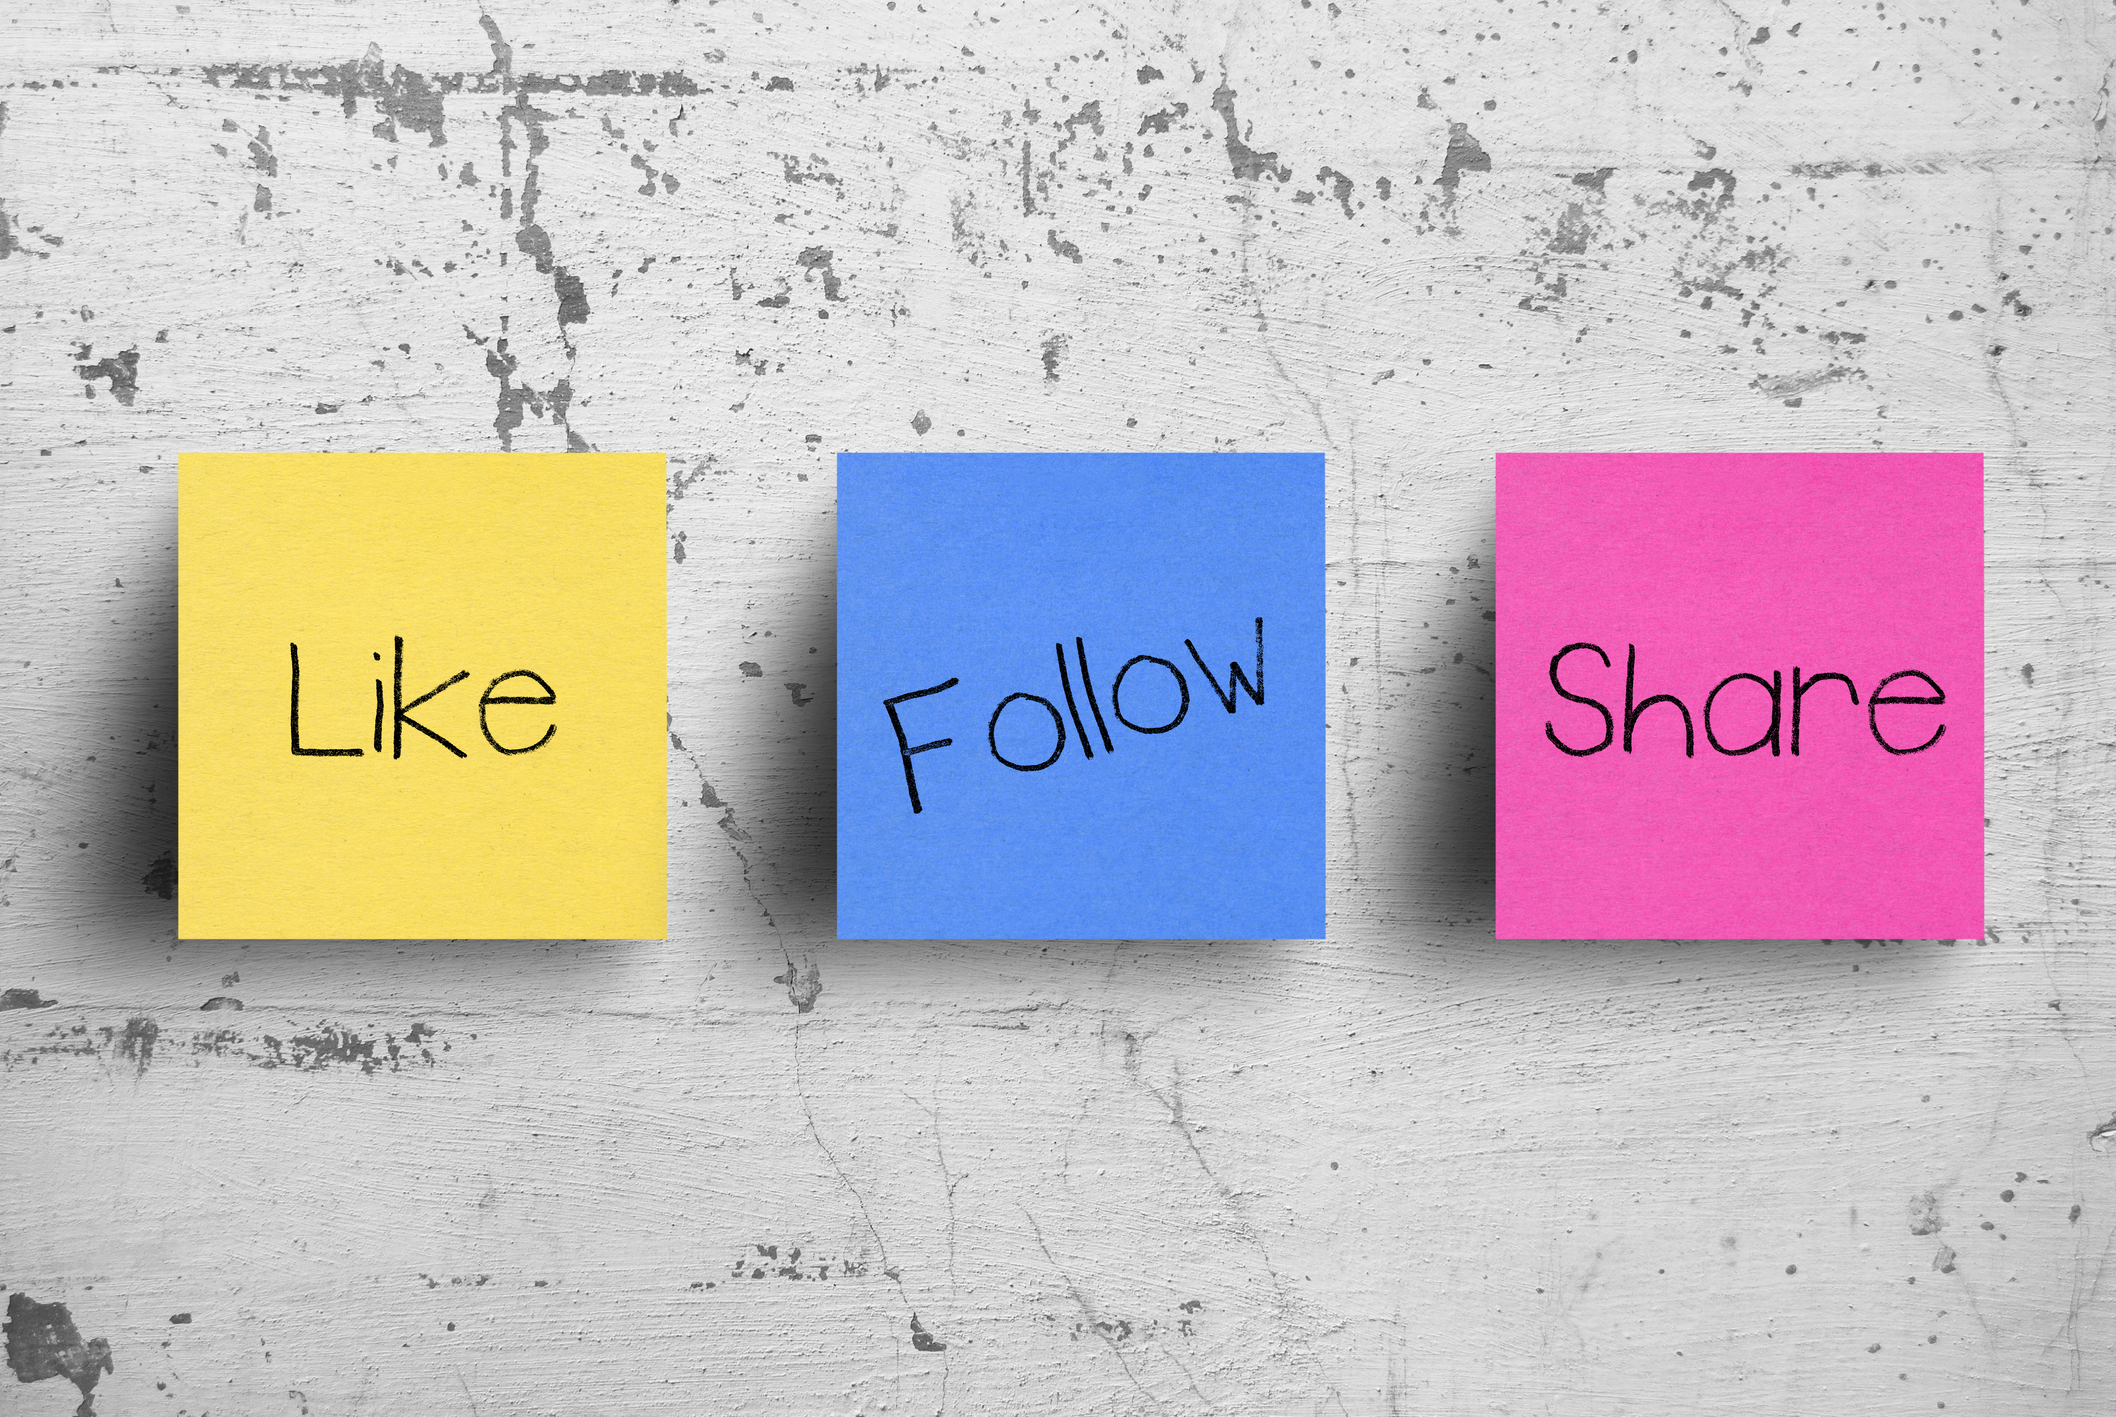 like, follow, and share written on post-it notes